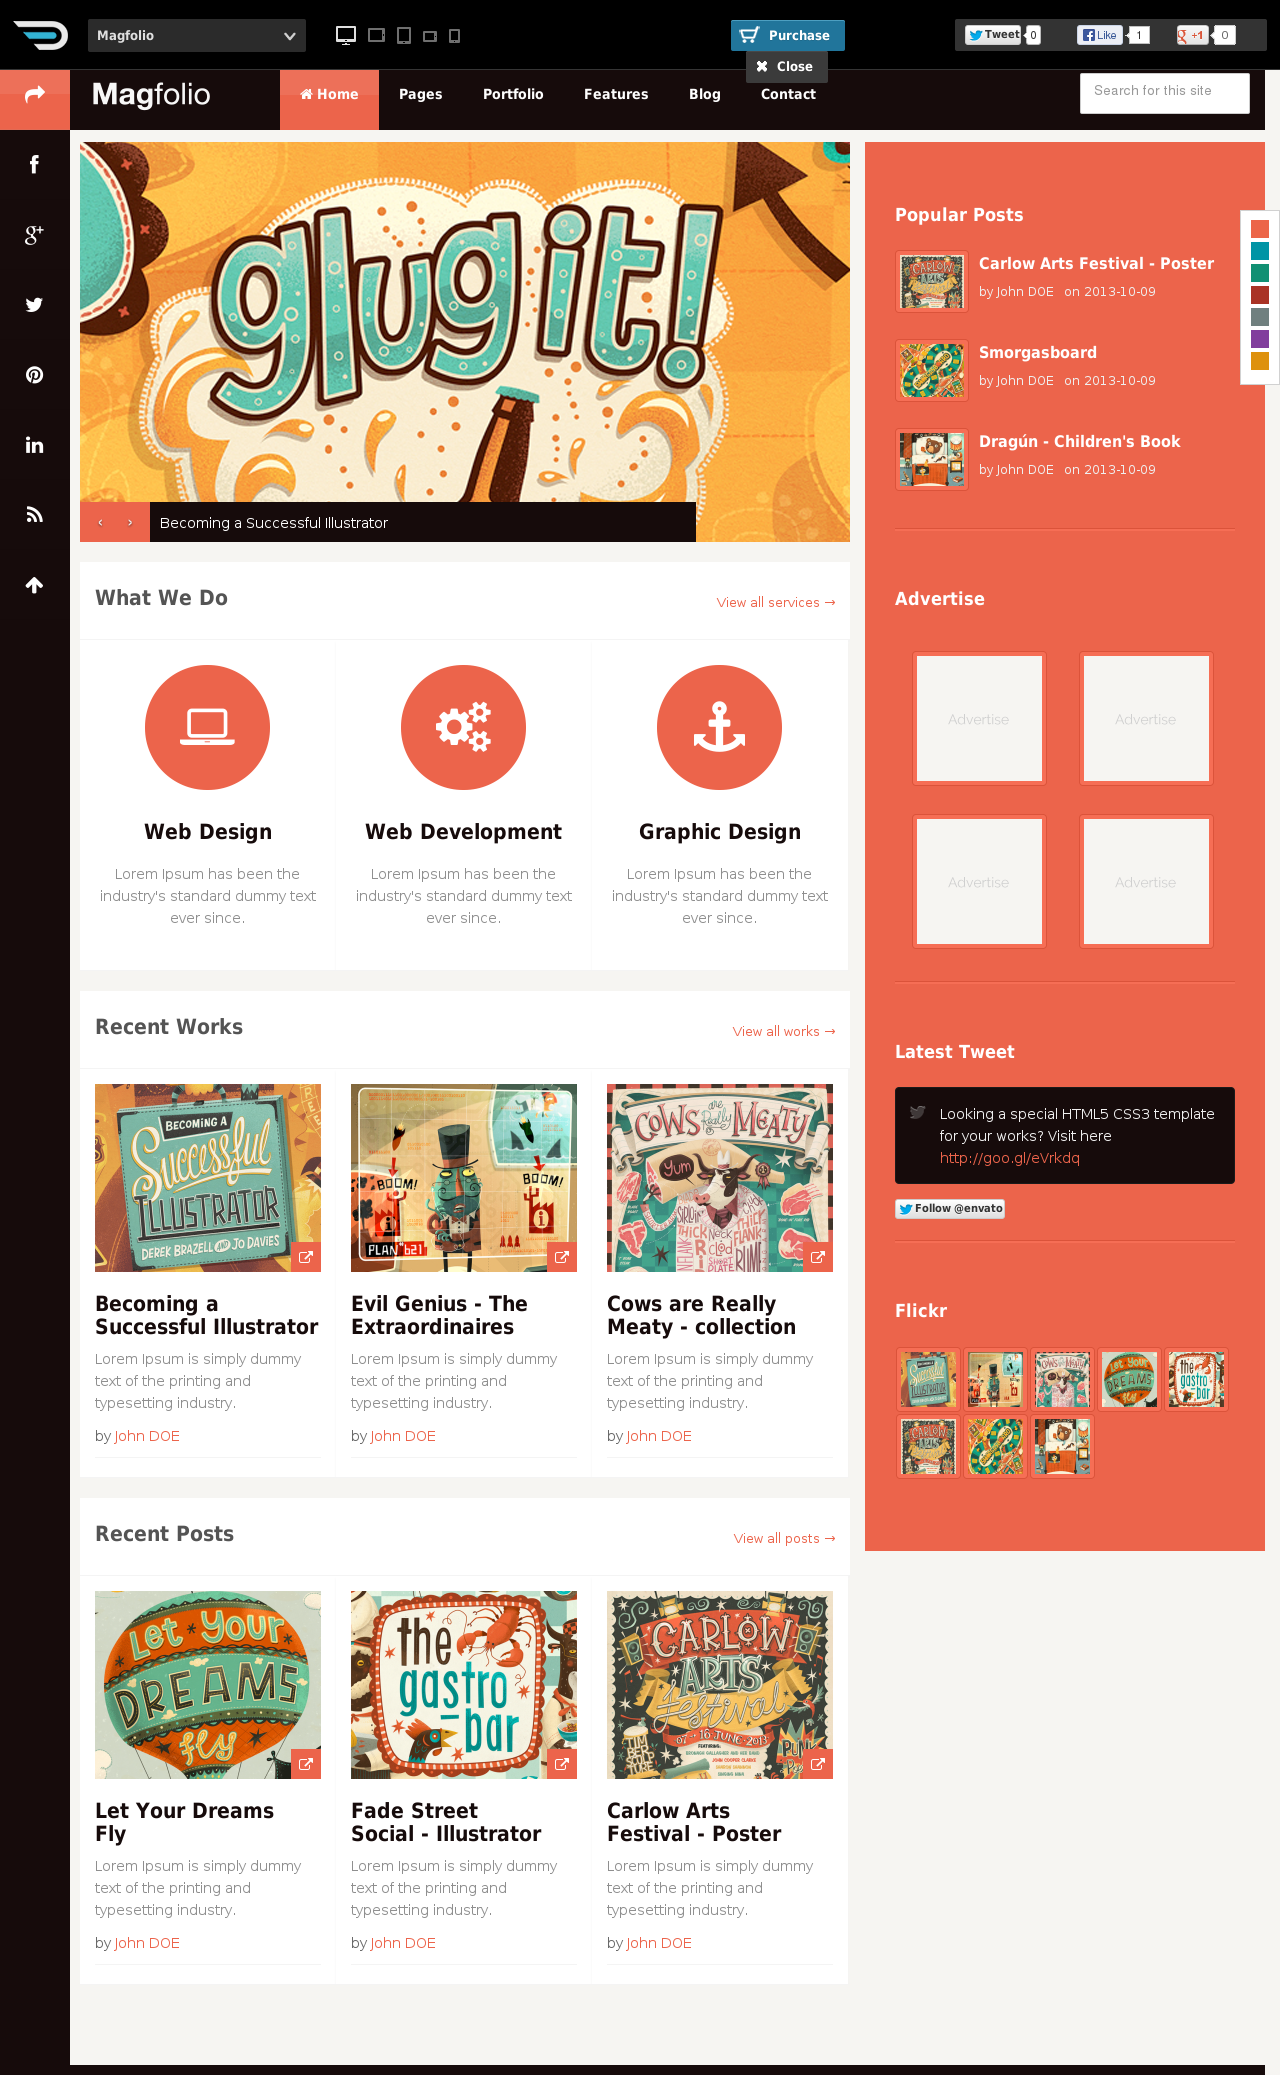 magfolio website templates